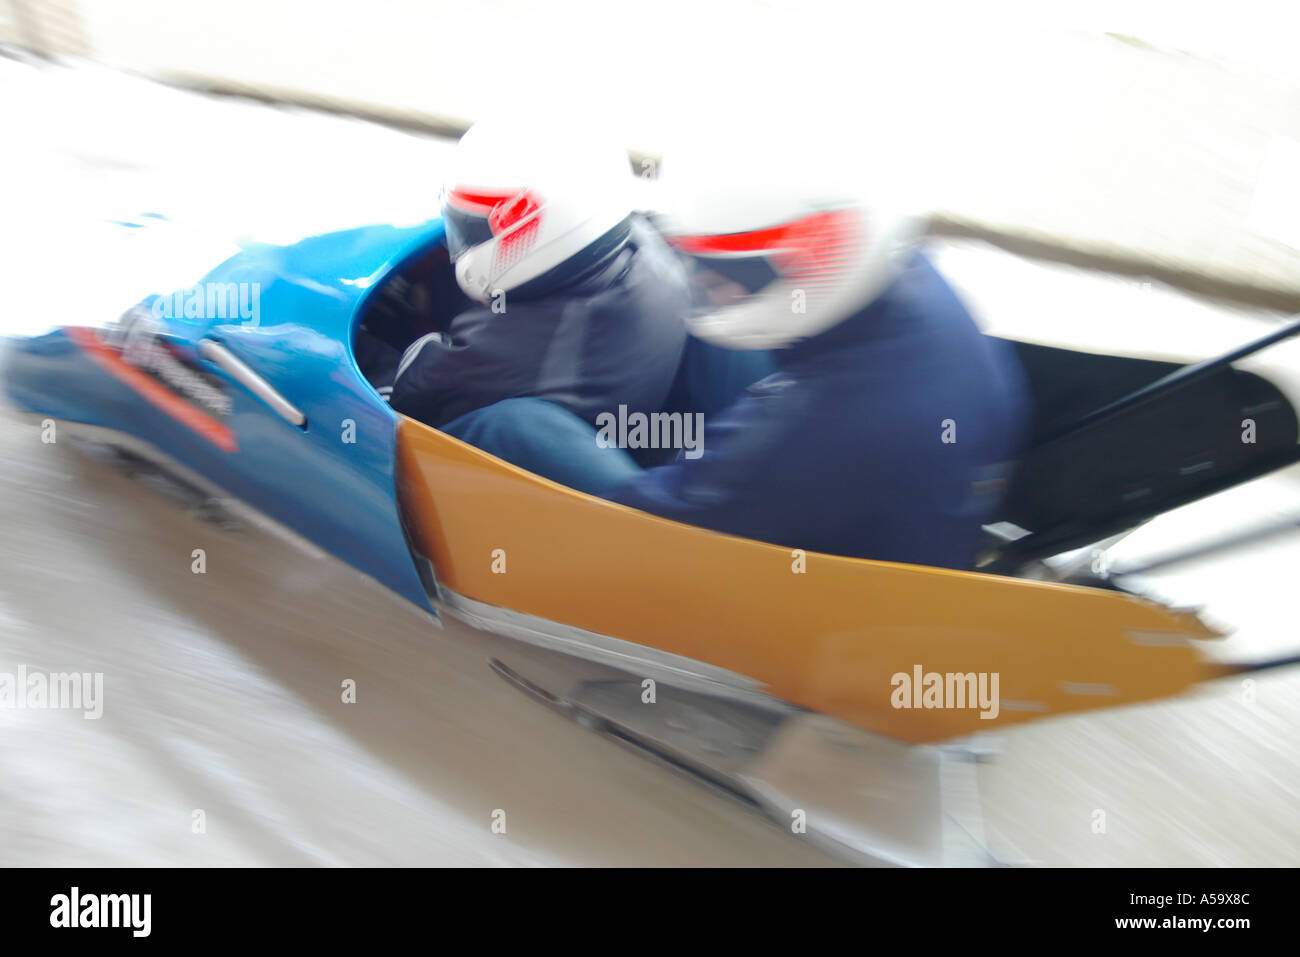 Bobsleigh speeding down the course at 100hm h Stock Photo